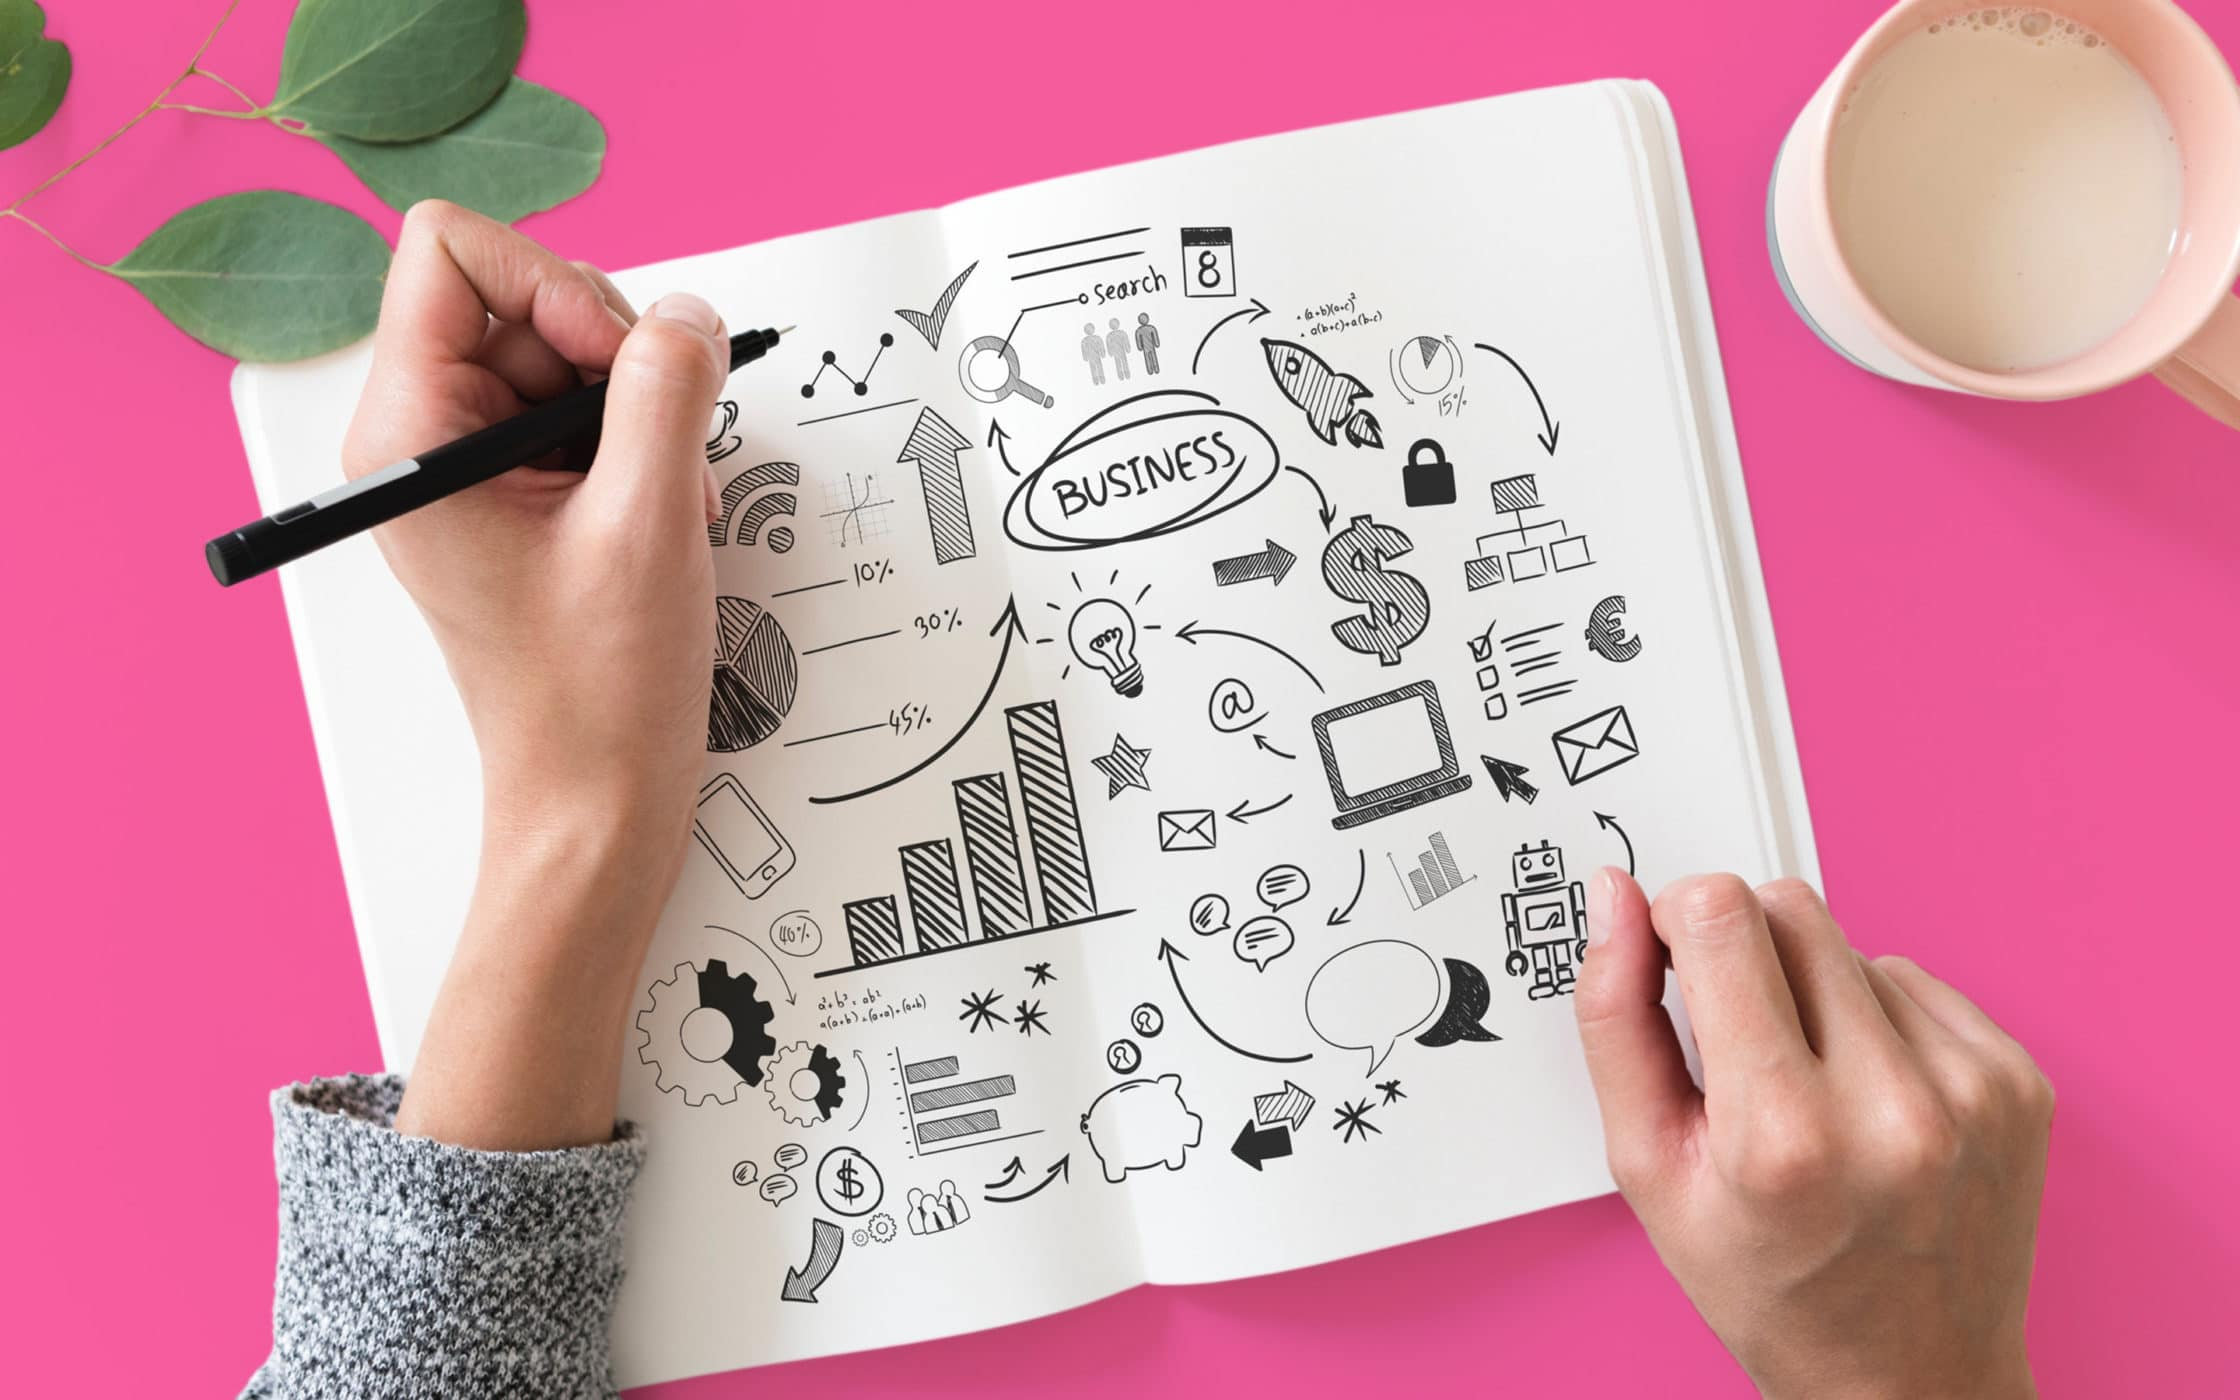 What Is A Vertical Marketing System? The Basics Of Vertical Marketing